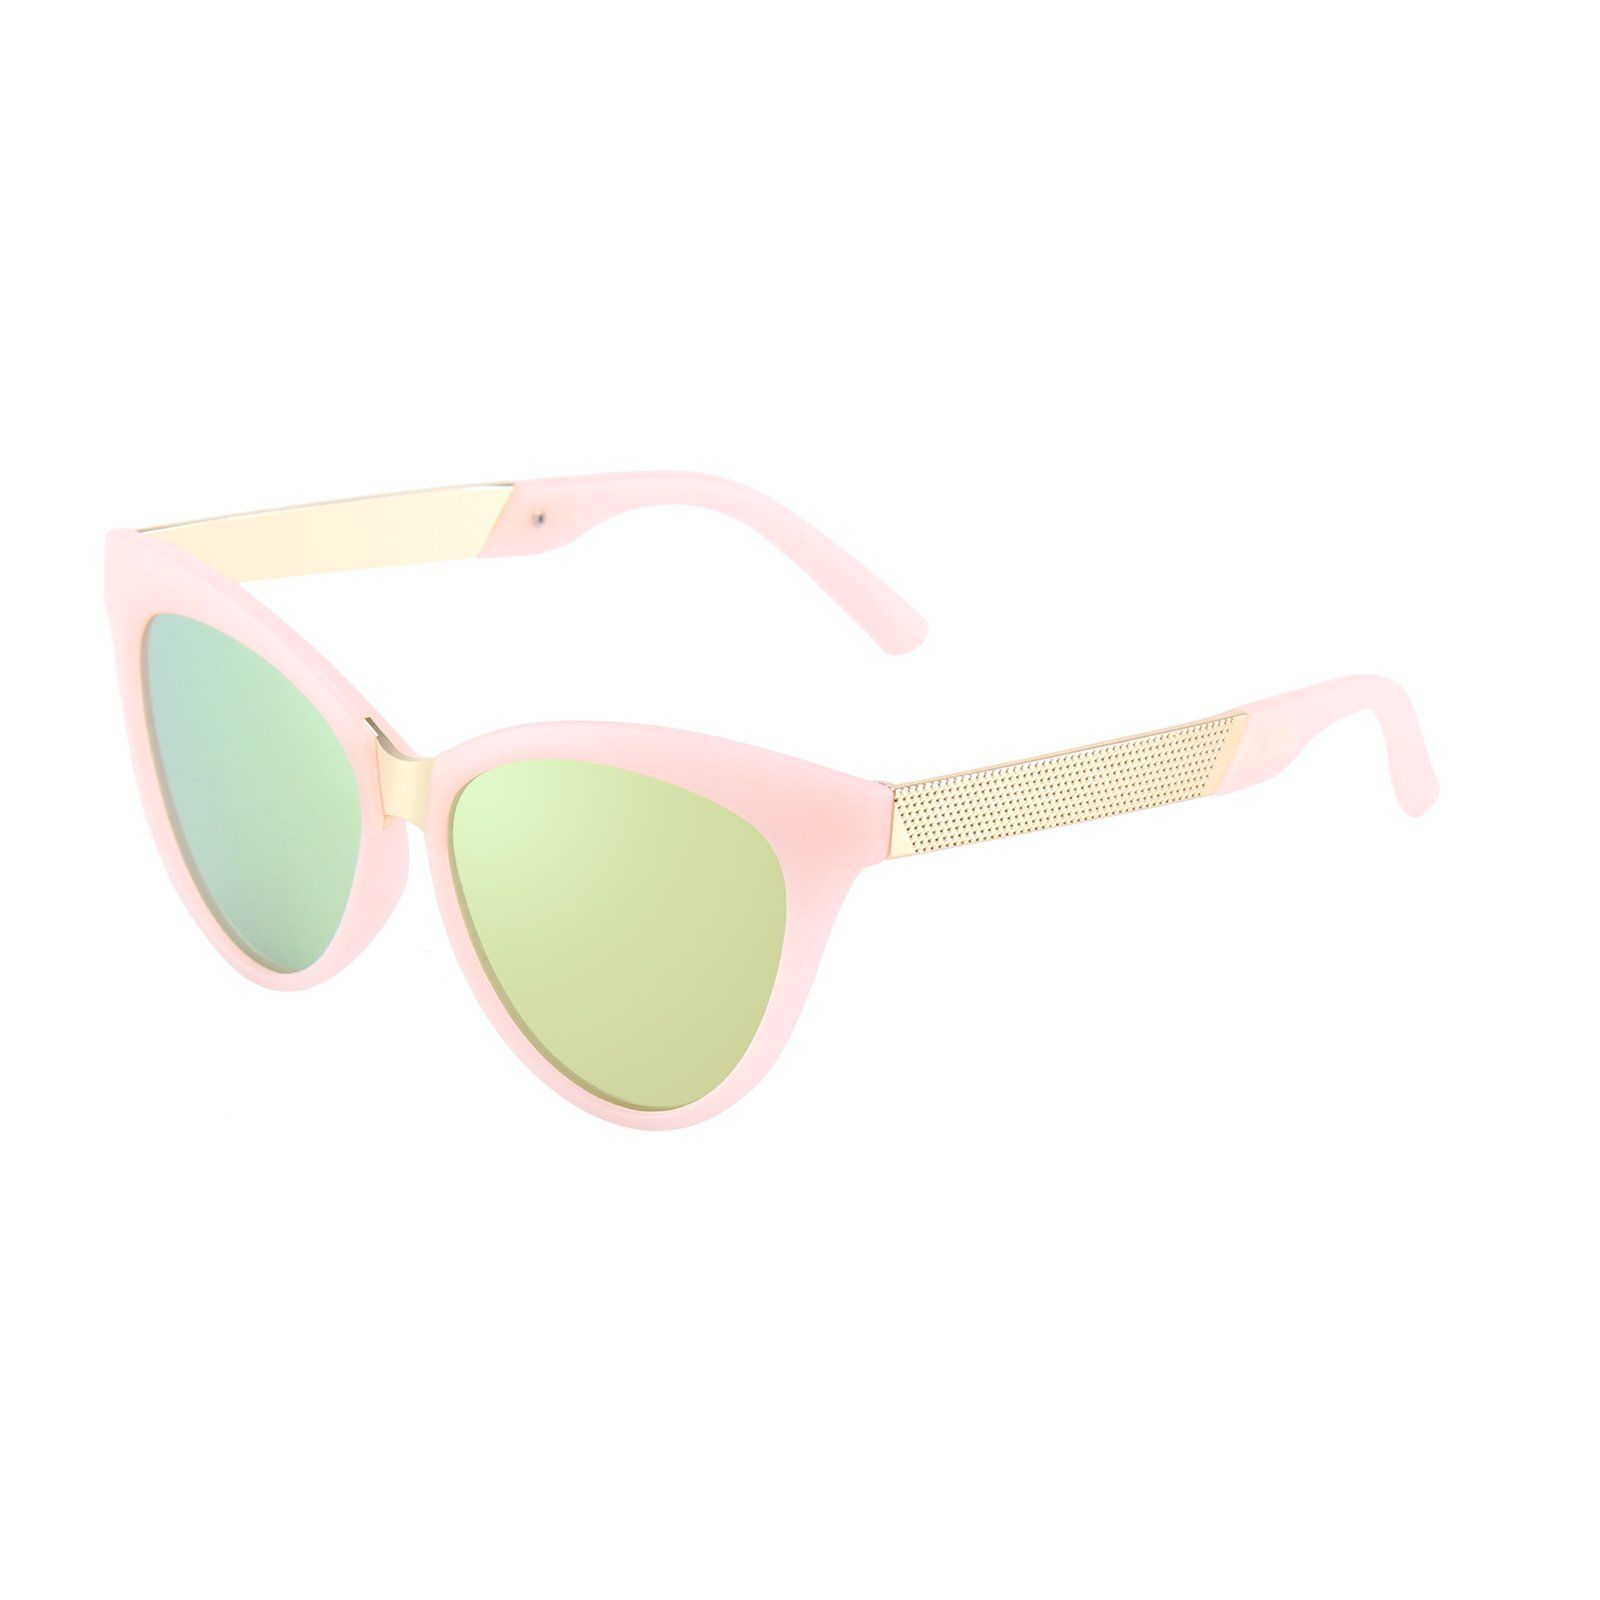 Edna Sunglasses (Light Pink)